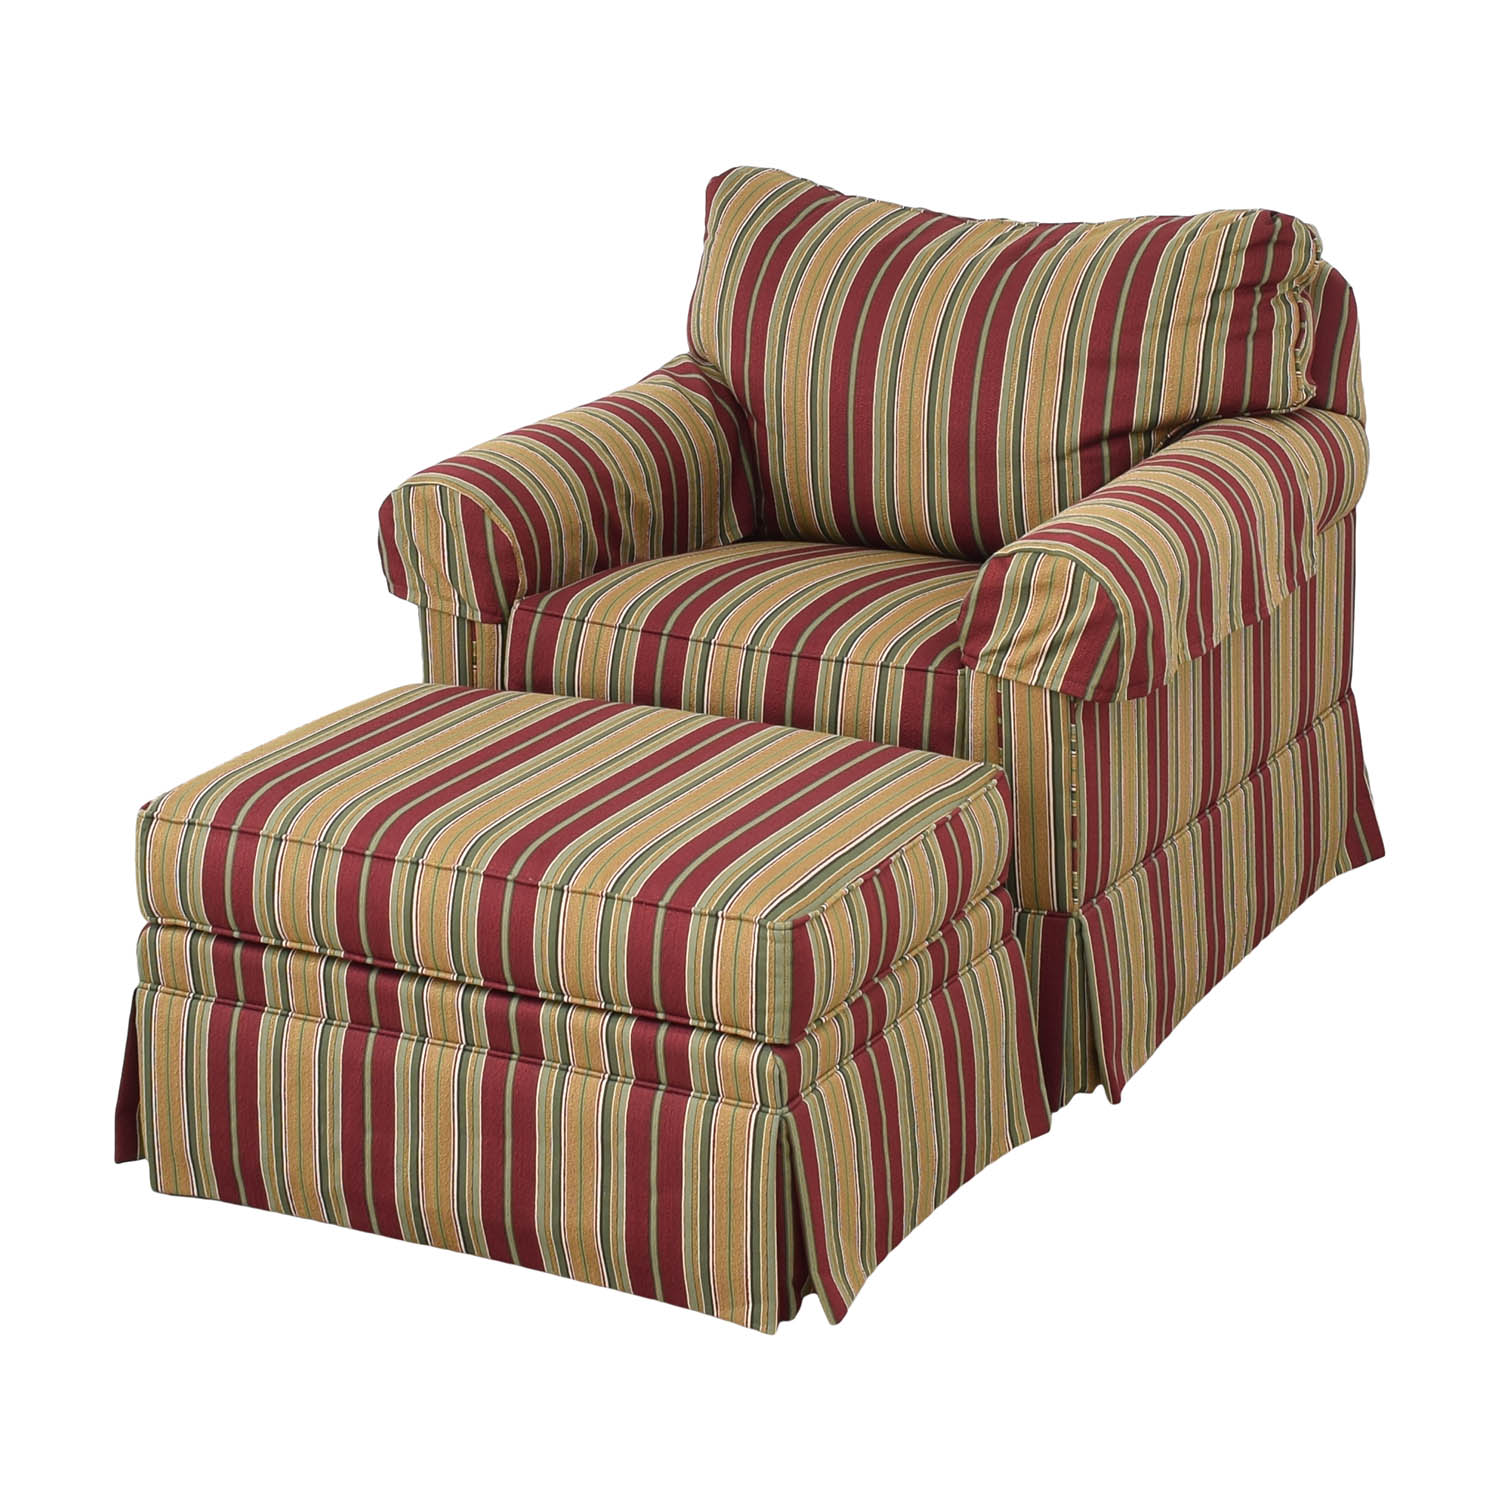 Ethan Allen Ethan Allen Slipcovered Chair and Ottoman multi